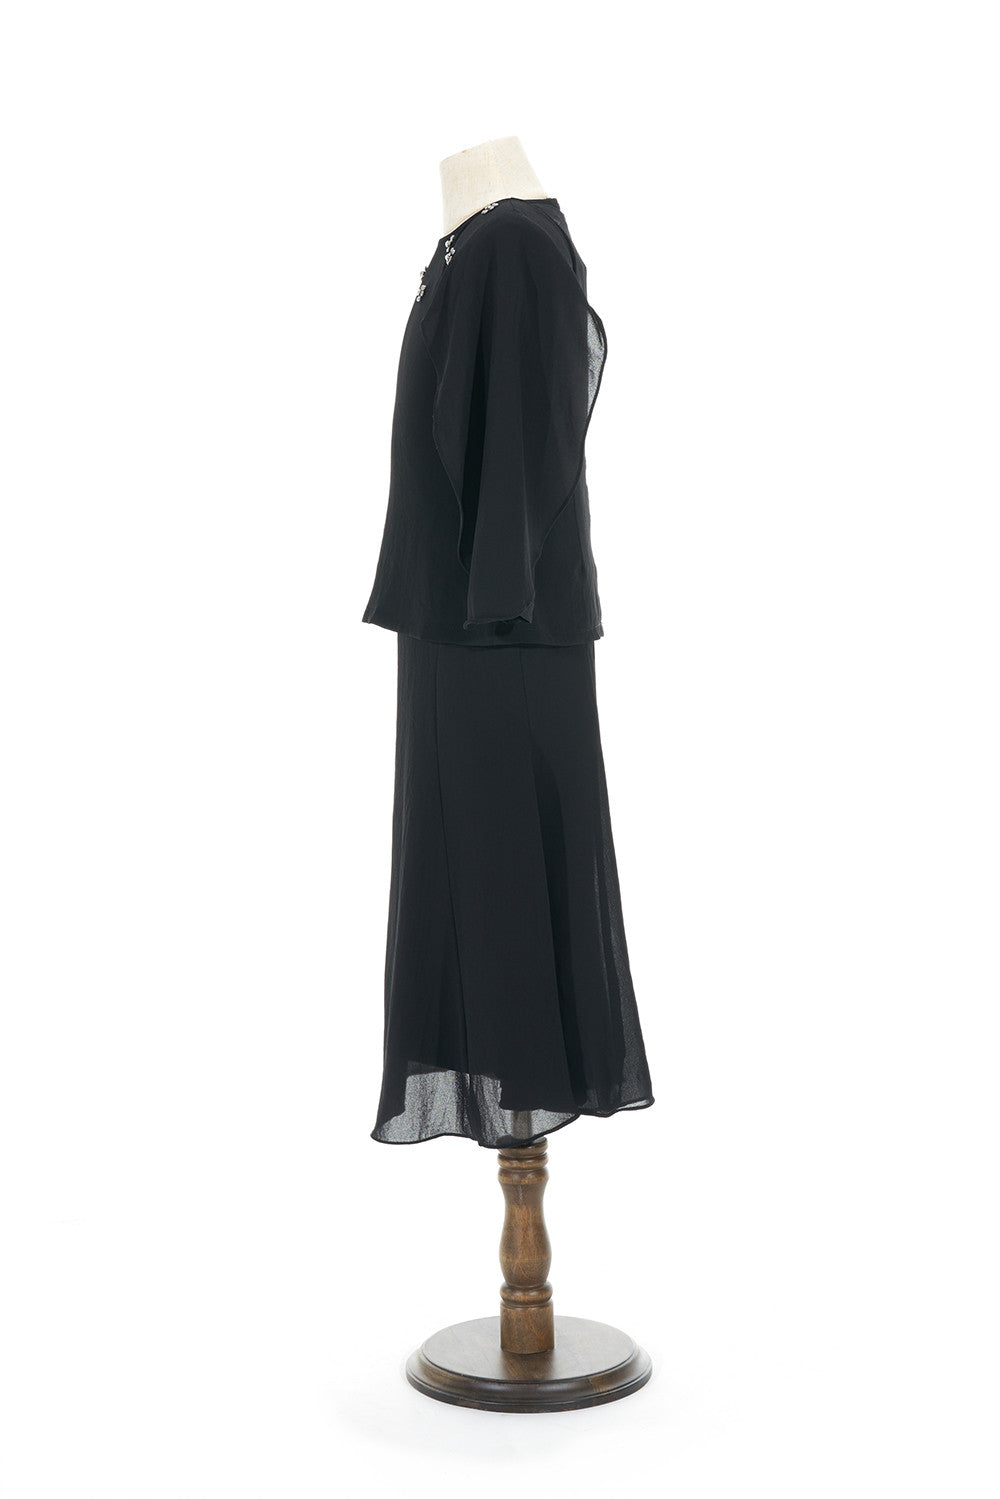 Petite Batwing Chiffon Top with Skirt in Black